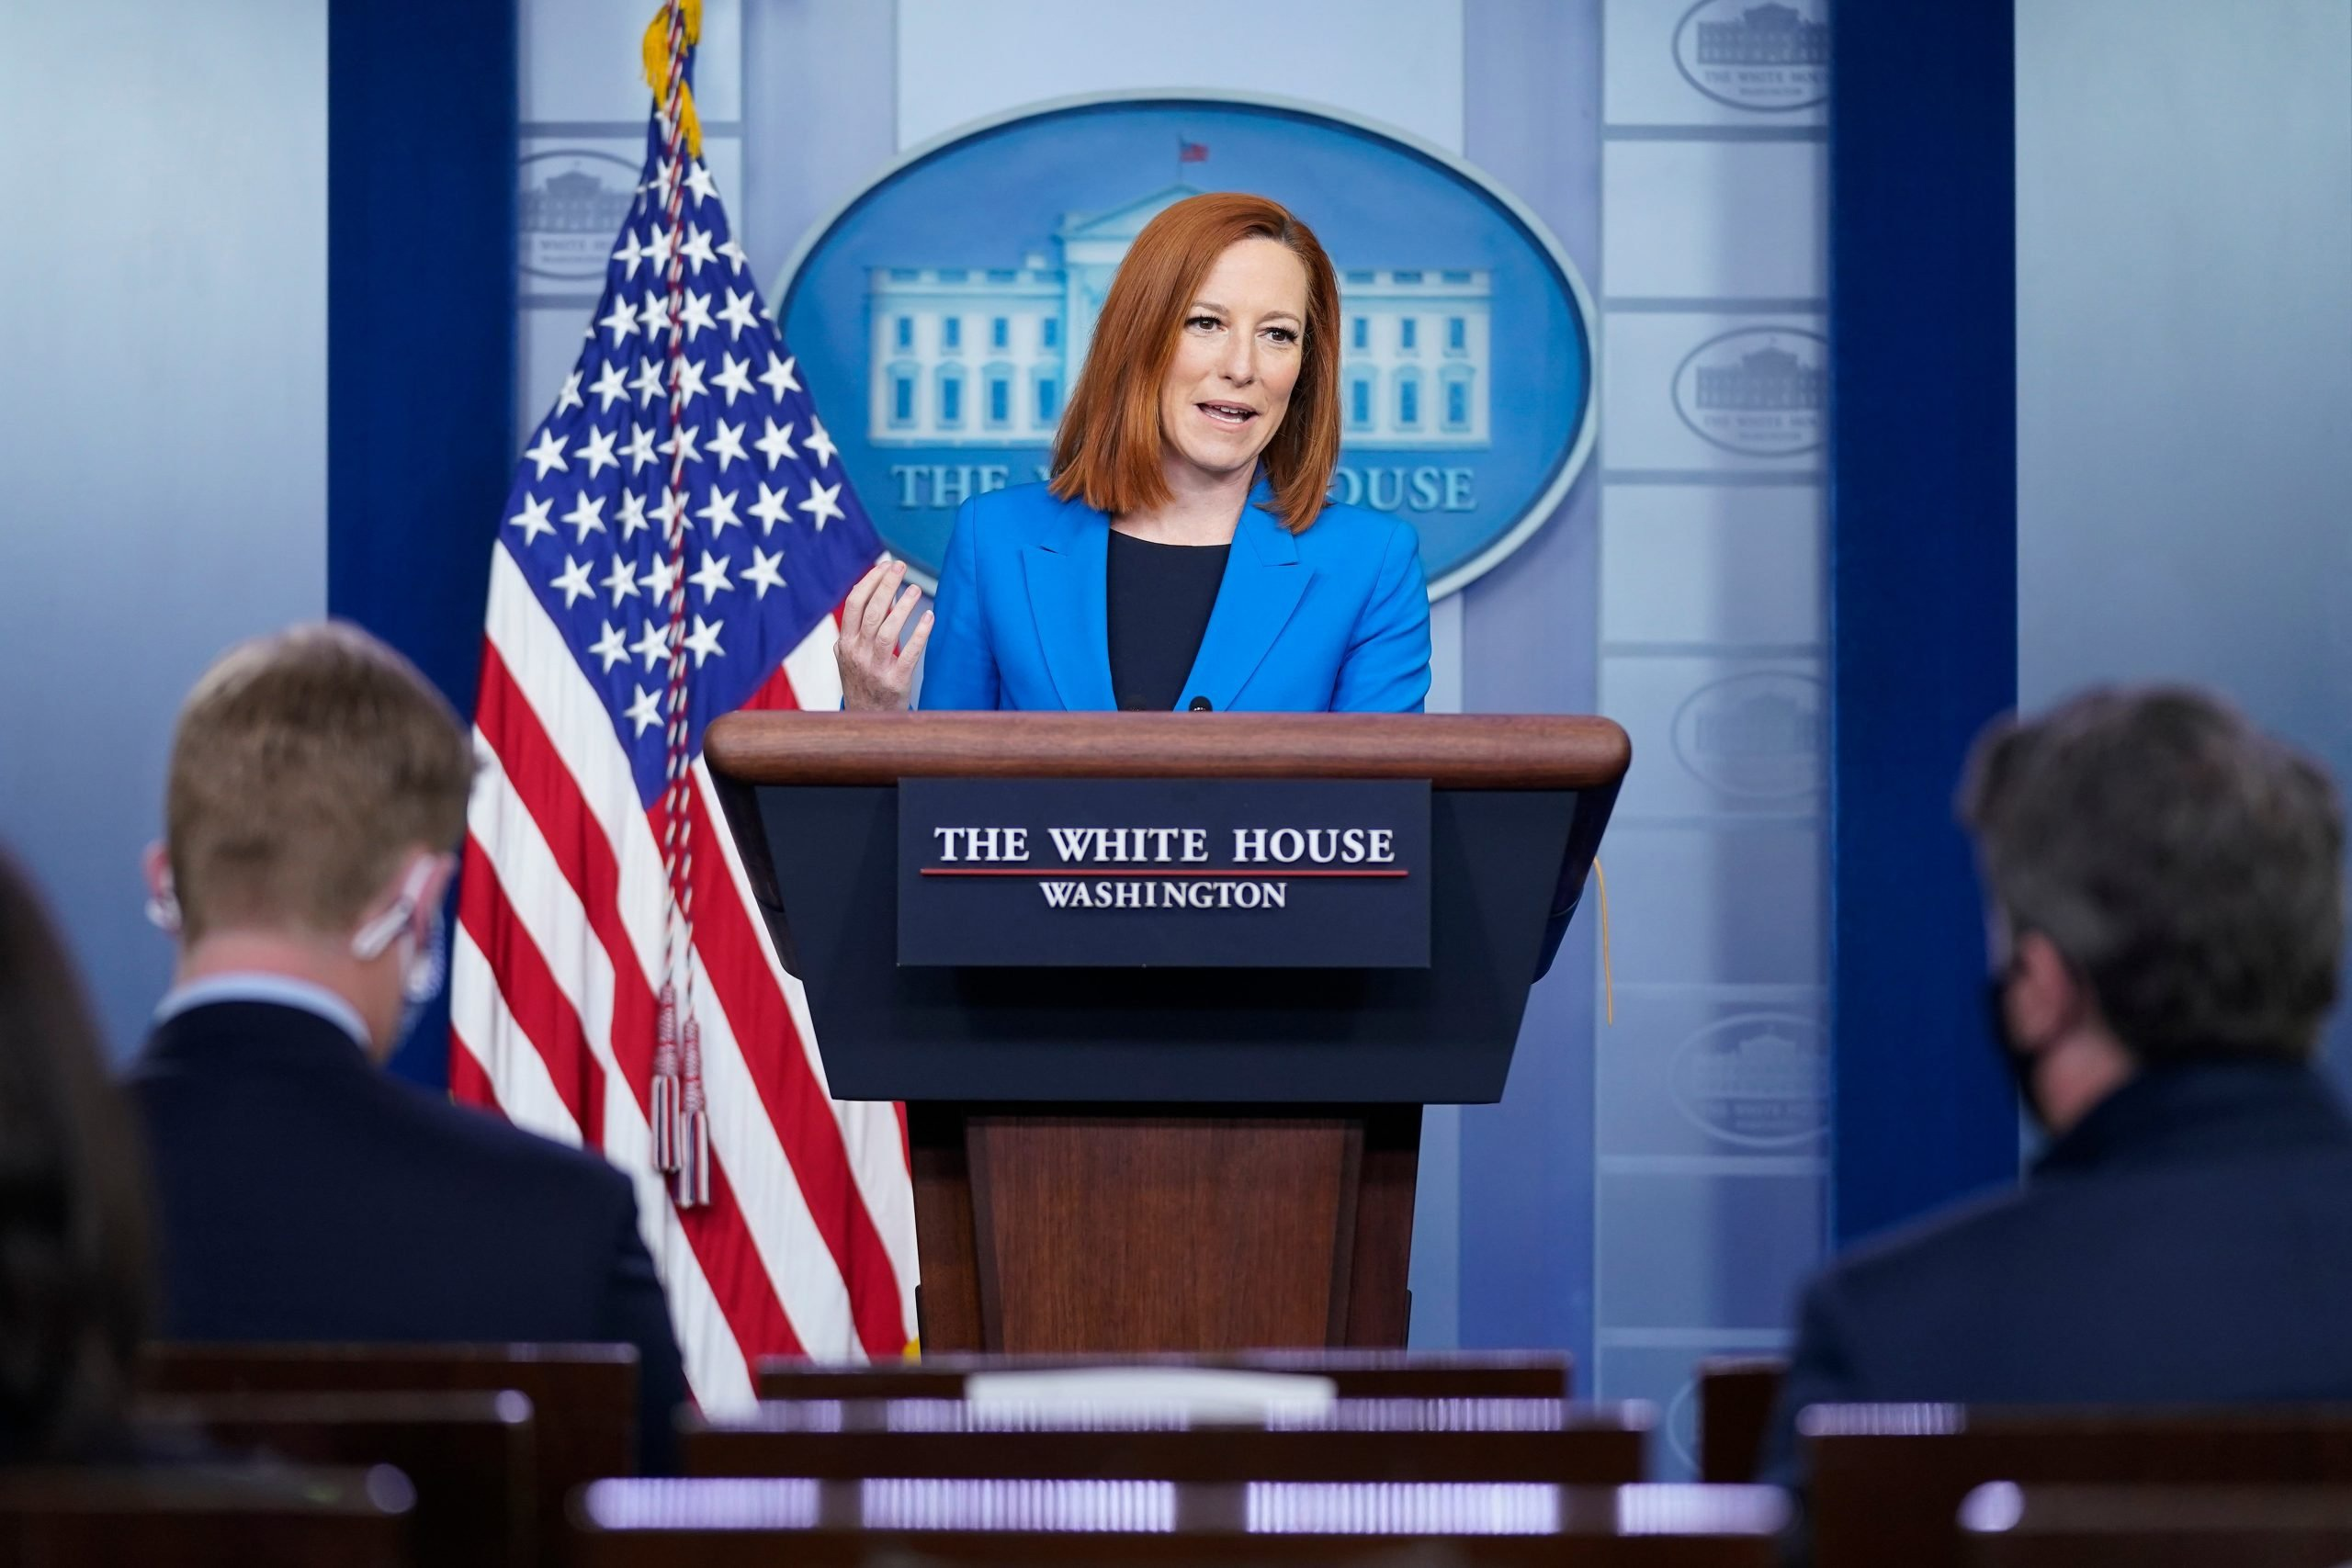 US interest in reducing tensions with Russia - White House